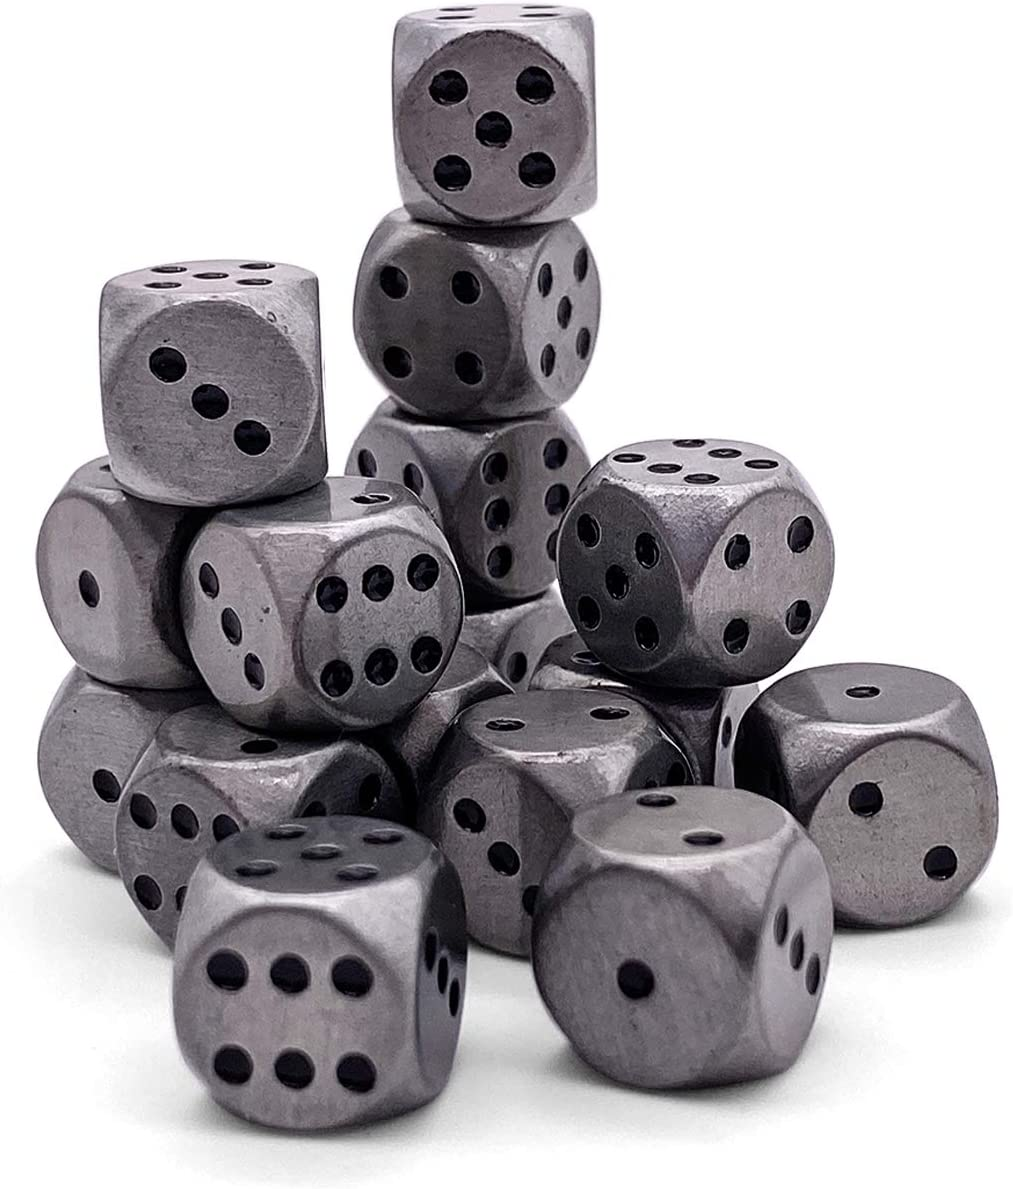 Aged Mithiral D6 Metal Pips Dice Set Of 16 With Tin Case By Norse Foundry Role Playing Dice Toys Games These work with both the packaged electron executable as well when starting foundry via. protecao para veiculos